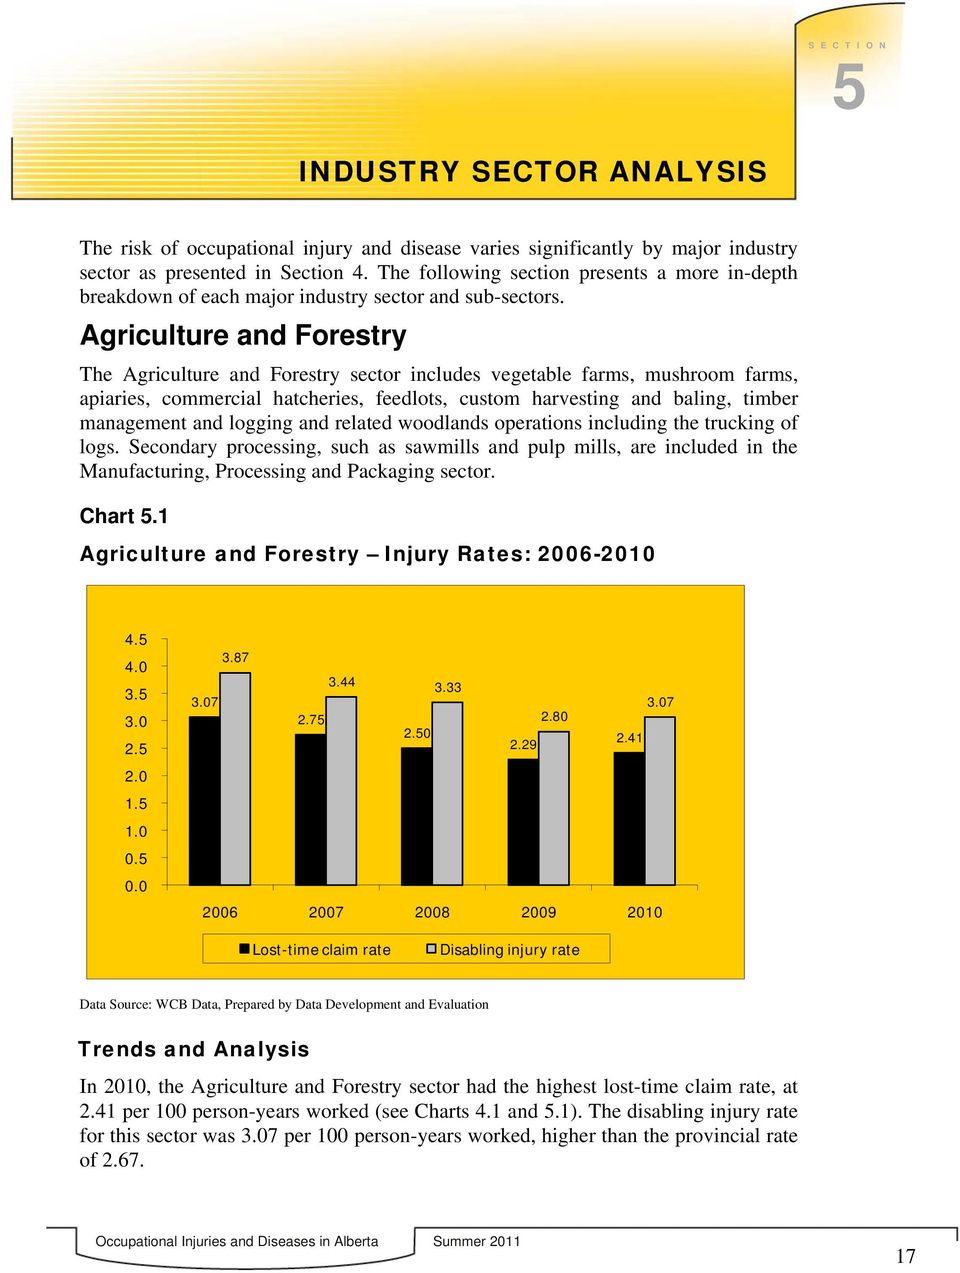 Agriculture and Forestry The Agriculture and Forestry sector includes vegetable farms, mushroom farms, apiaries, commercial hatcheries, feedlots, custom harvesting and baling, timber management and